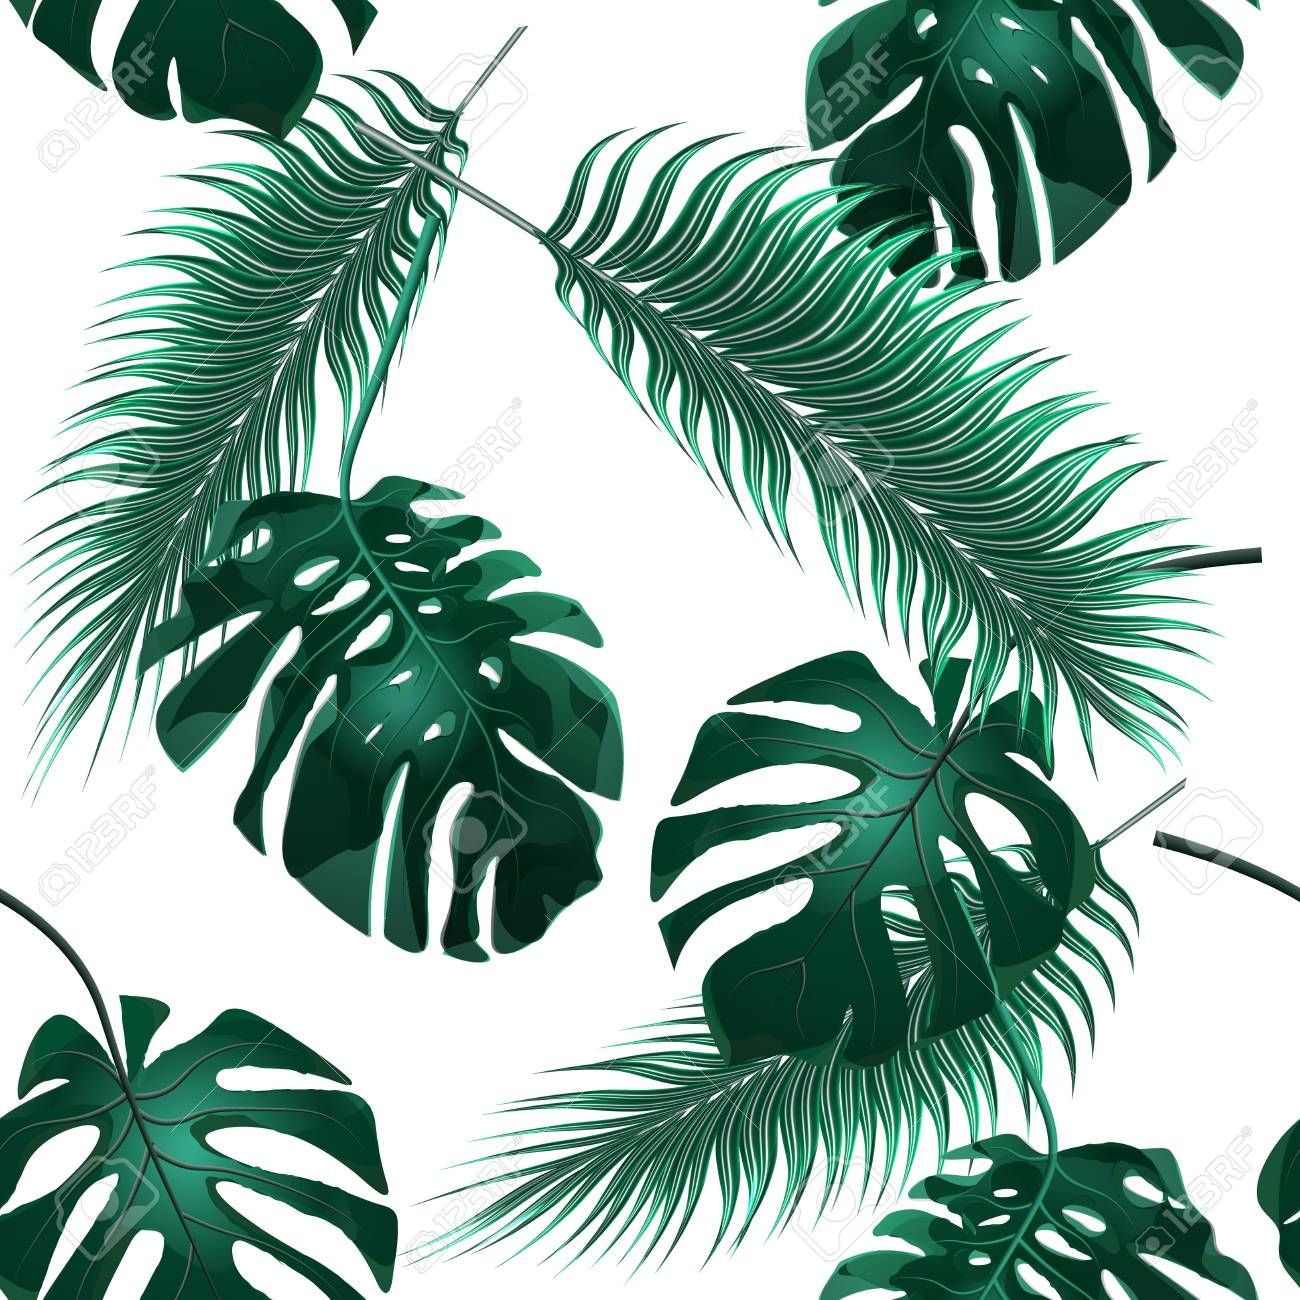 Tropical Palm Leaves Jungle Thickets Seamless Floral Wallpaper Royalty Free Cliparts Vectors And Stock Illustration Image 76230241 Download all photos and use them even for commercial projects. tropical palm leaves jungle thickets seamless floral wallpaper